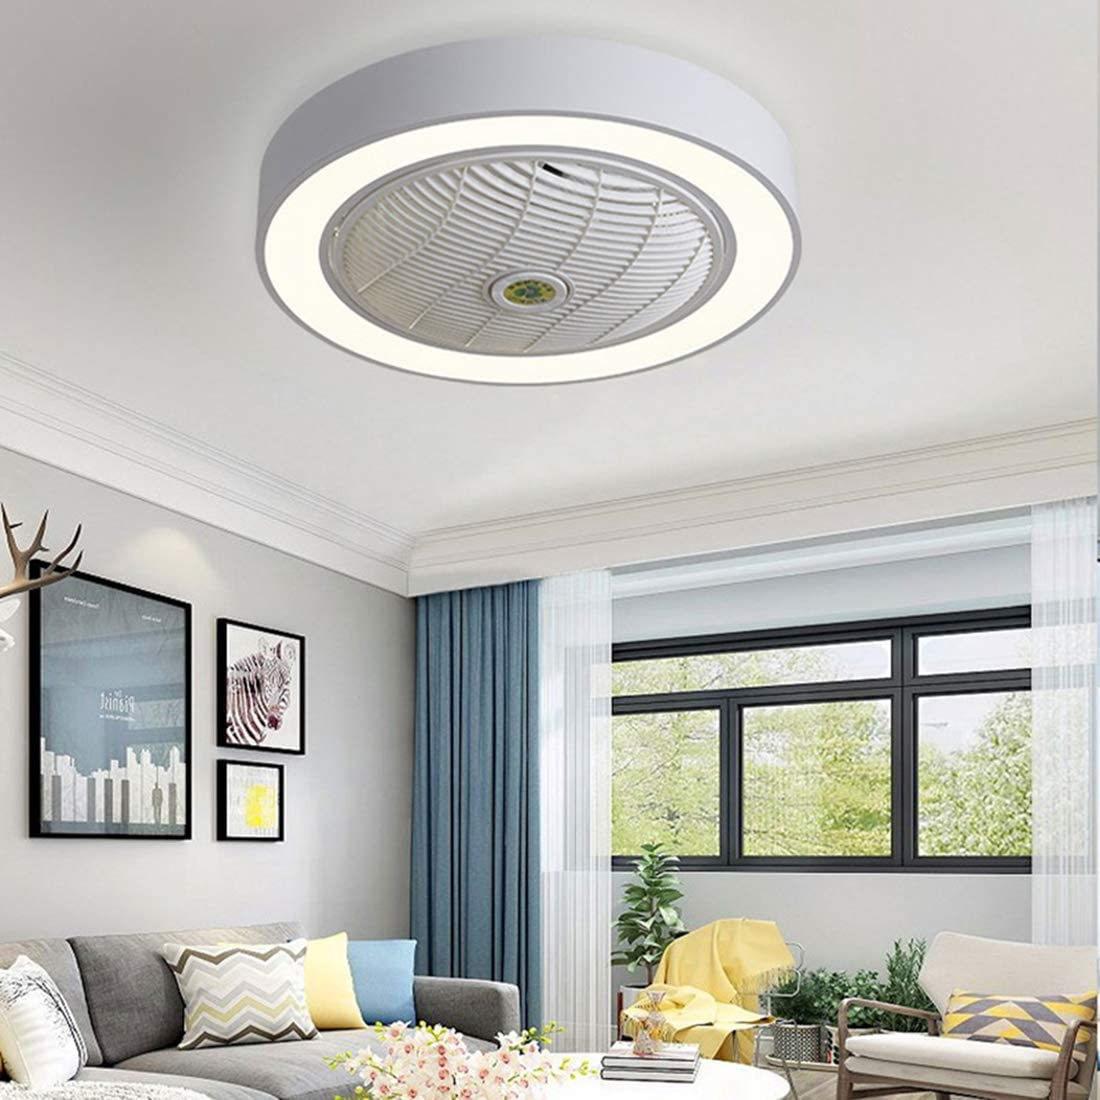 Spring new work Jinweite Ceiling 5 popular Fan with Light 22 LED inches Remote Control Fu